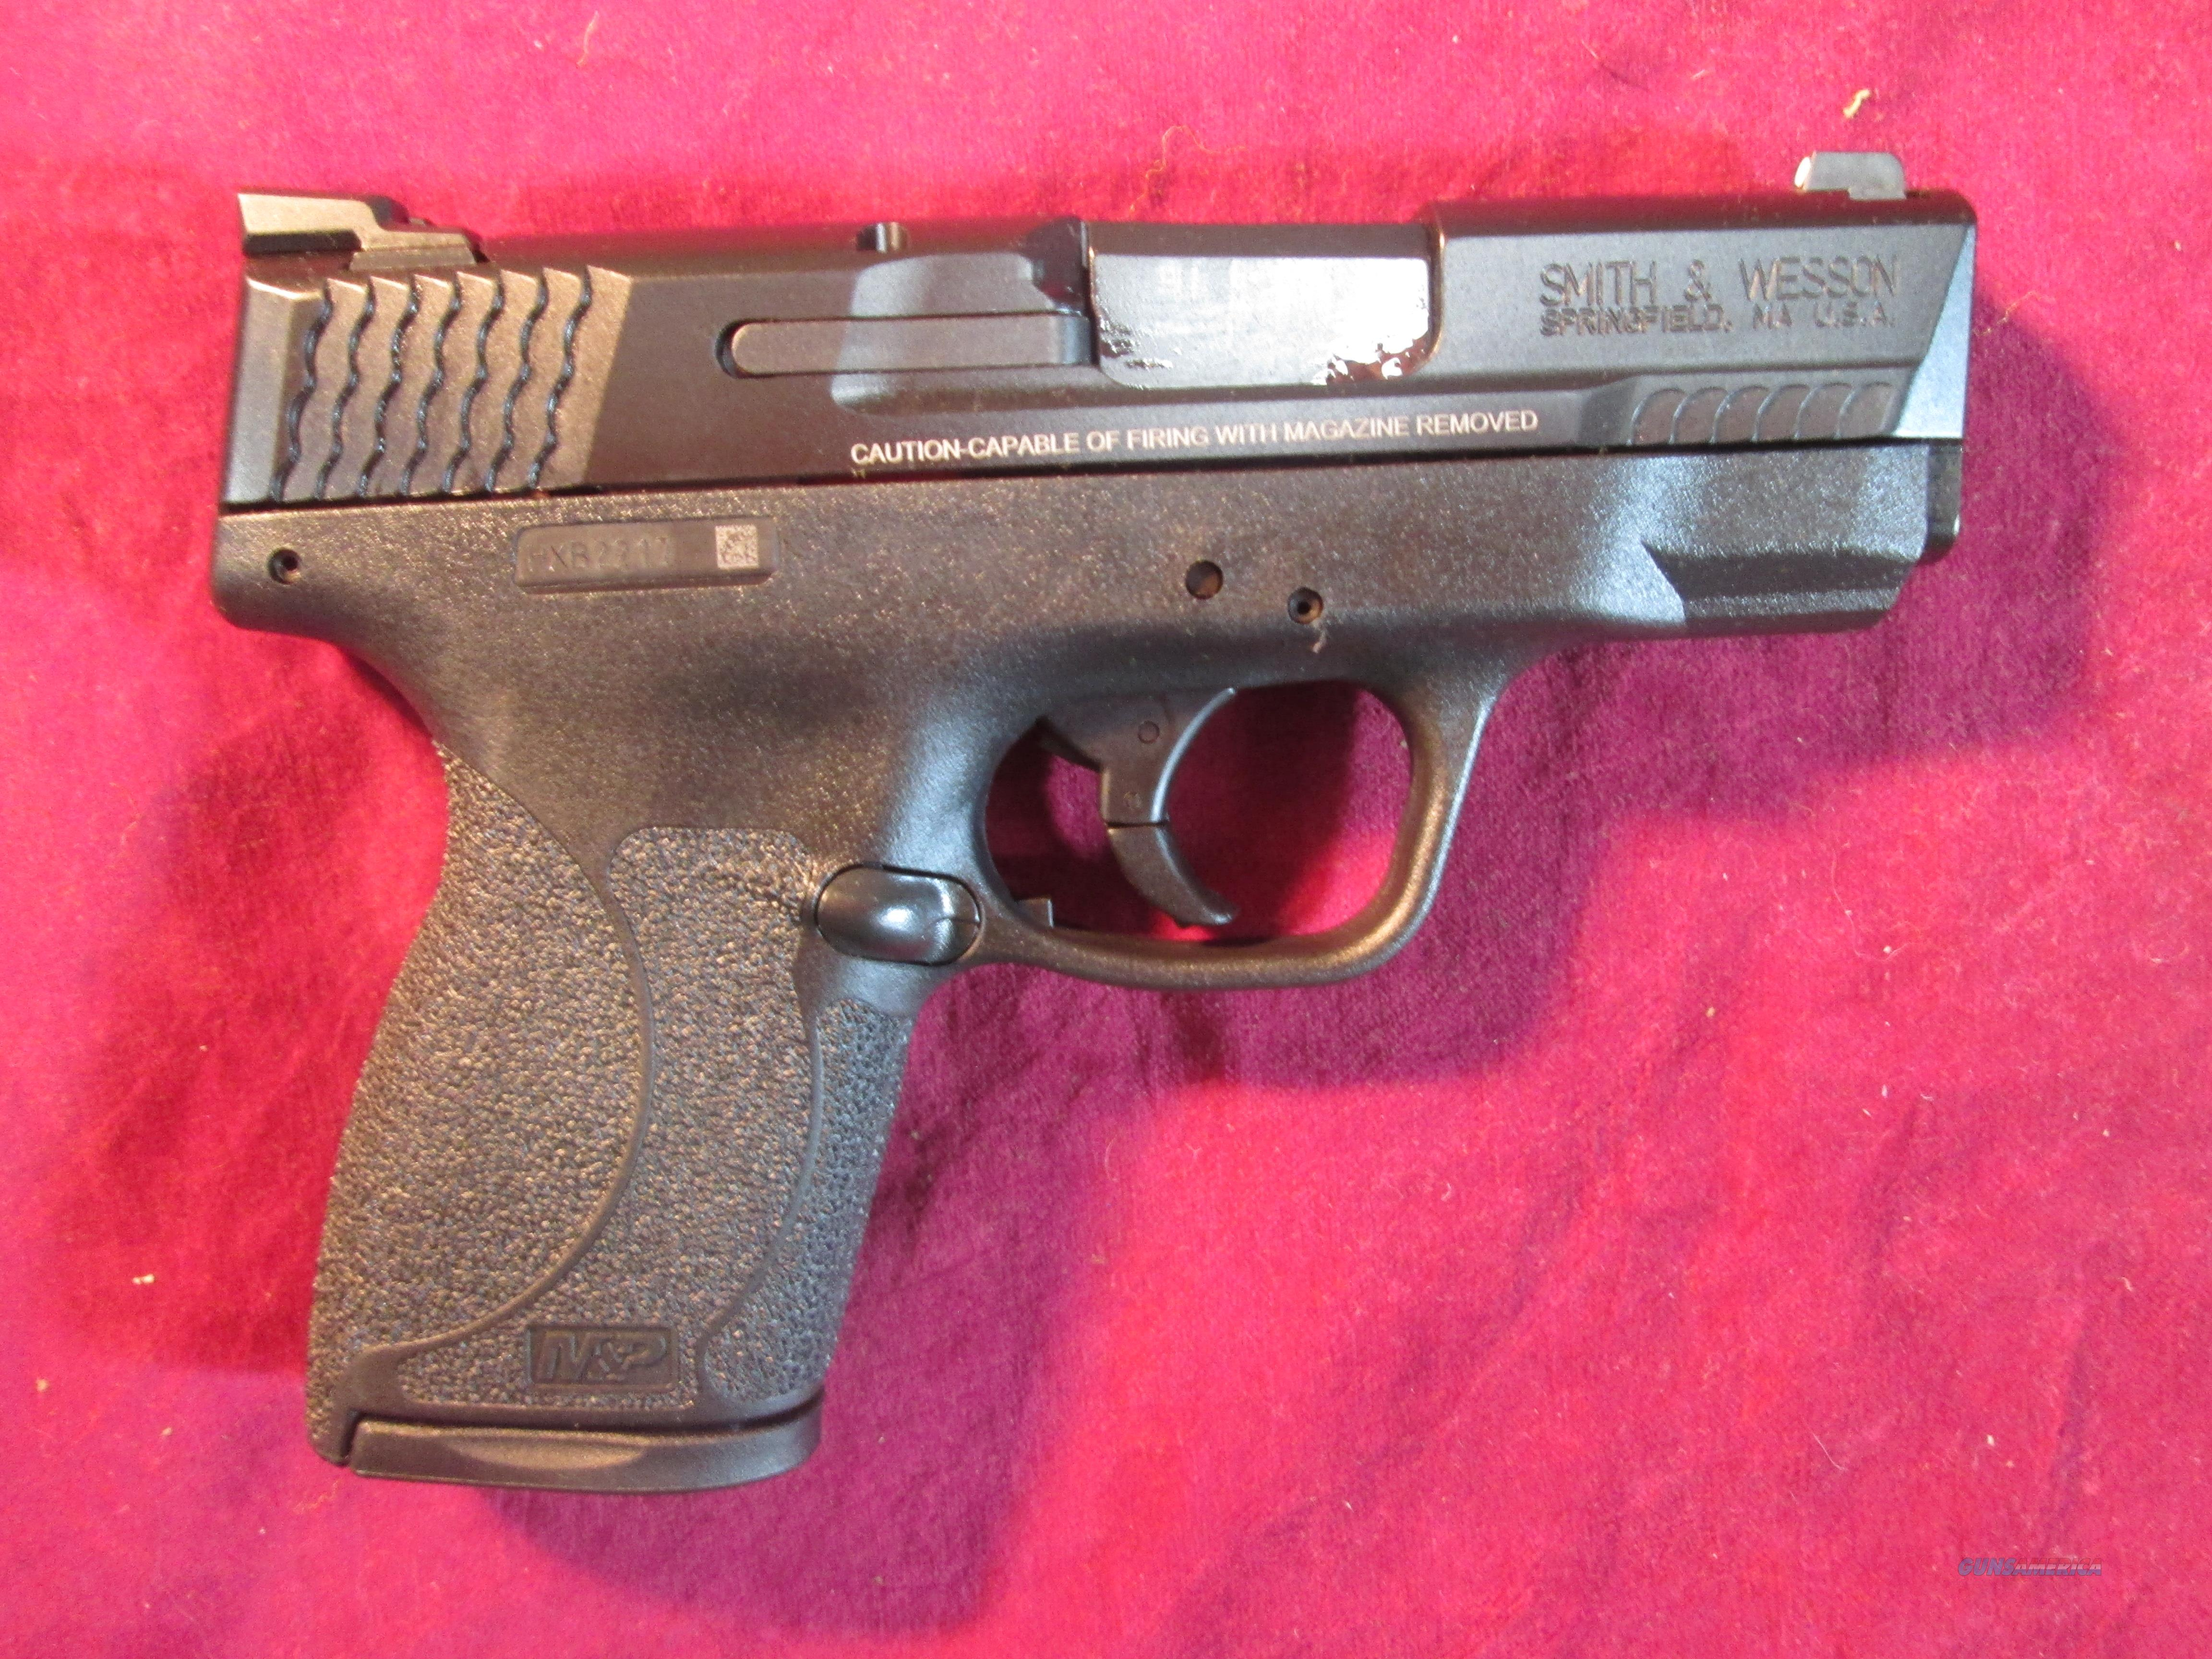 SMITH AND WESSON M&P SHIELD 45ACP  W/ NIGHT SIGHTS AND 3 MAGS NO SAFETY NEW (11726)    Guns > Pistols > Smith & Wesson Pistols - Autos > Polymer Frame